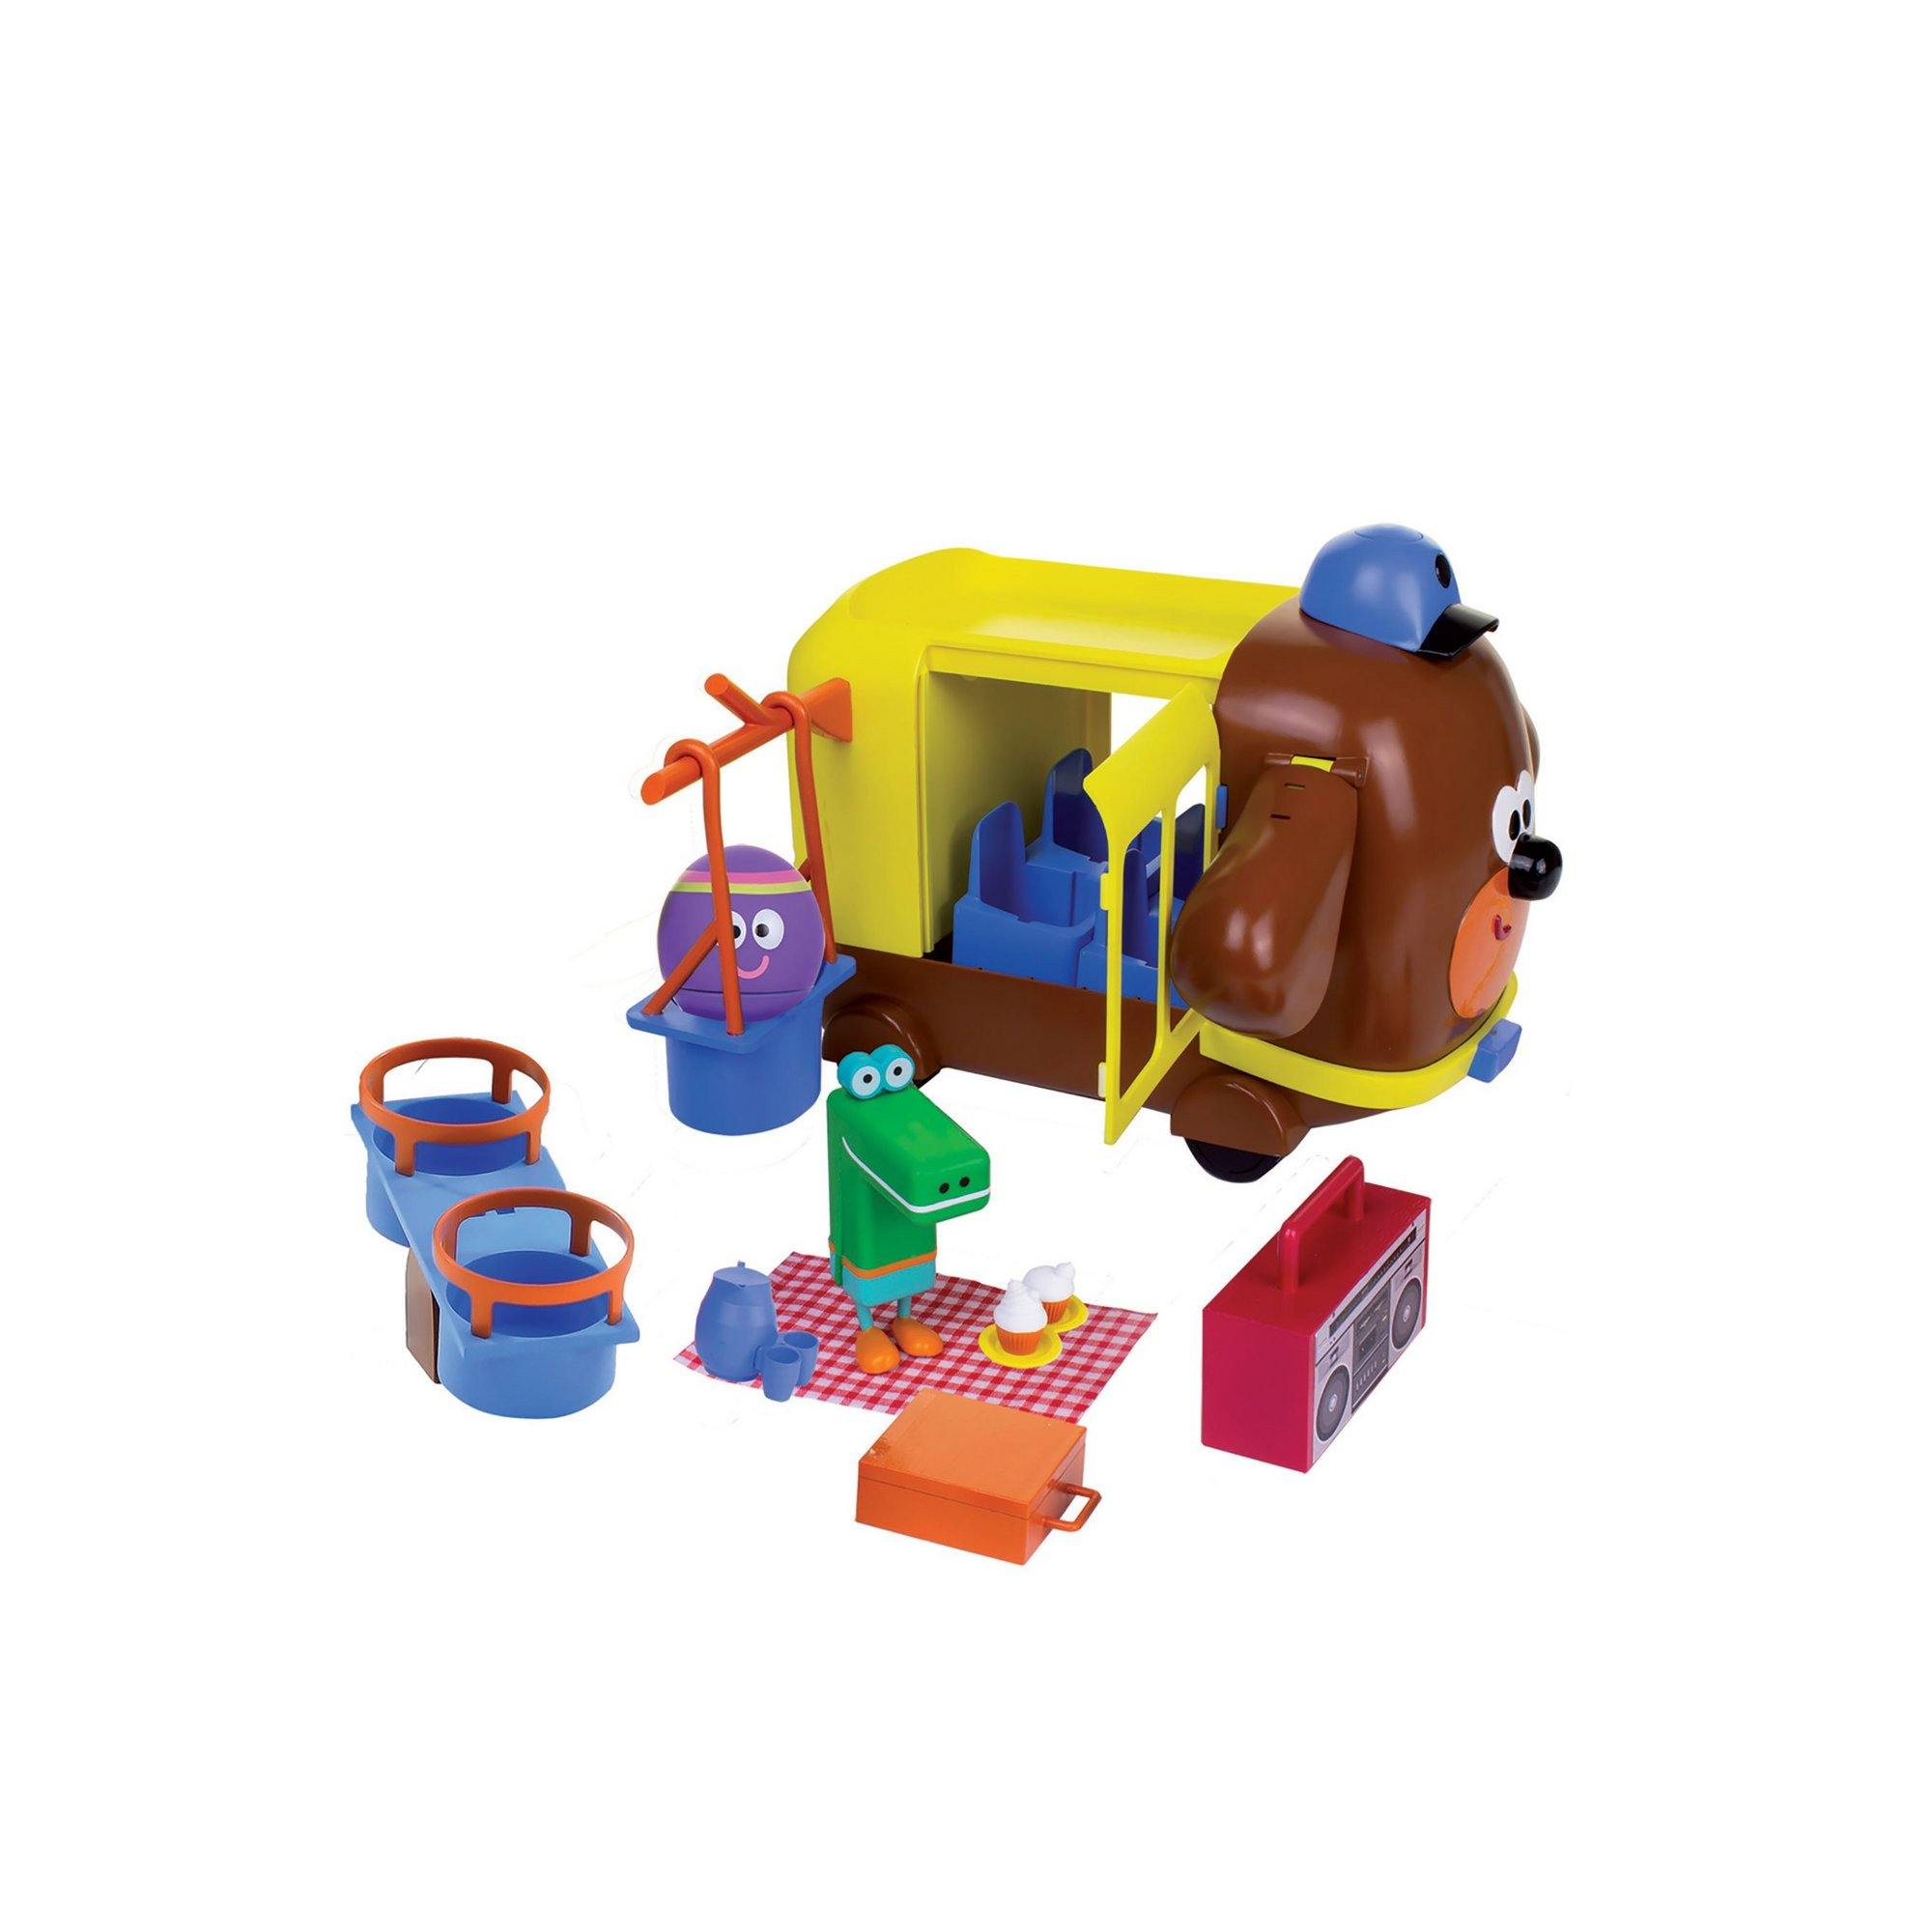 Image of Hey Duggee Adventure Bus Playset